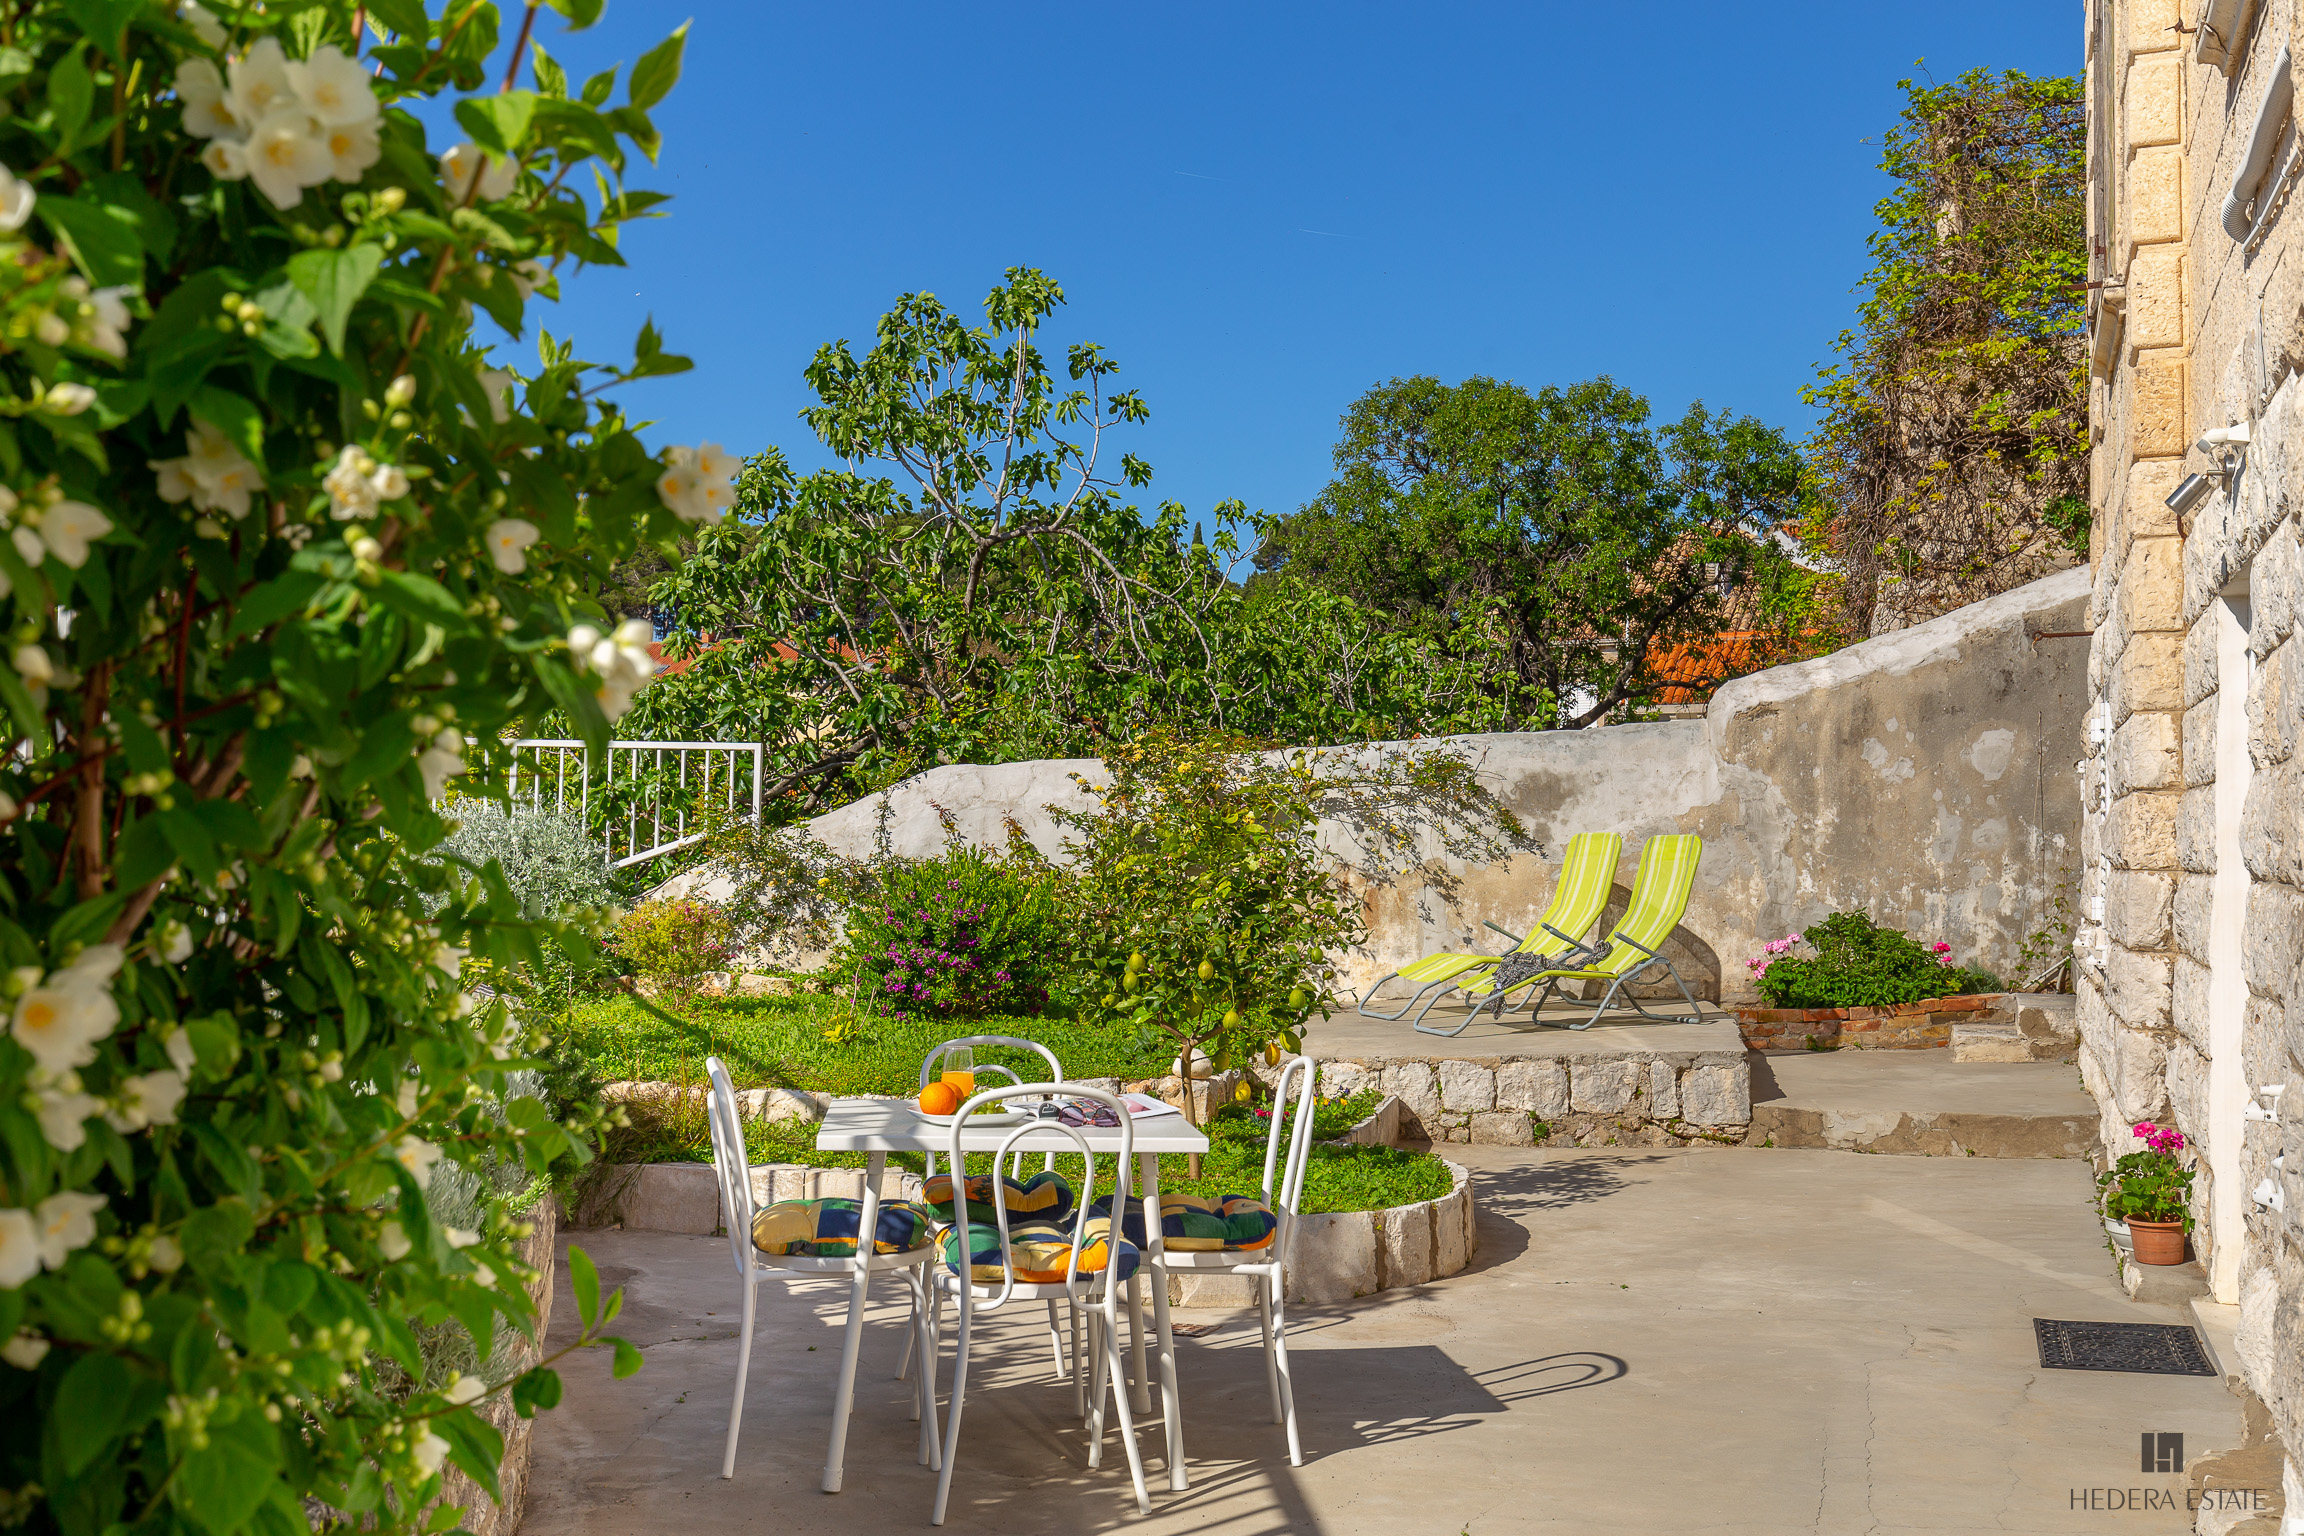 <p>Sleeps 2 (+2)<br />1 bedroom<br />1 bathroom<br />Kitchen, dining area and living room<br />Distance to beaches: 10 minutes walking<br />Distance to Old Town: 3&nbsp;minutes walk with a small amount of&nbsp;stairs</p>